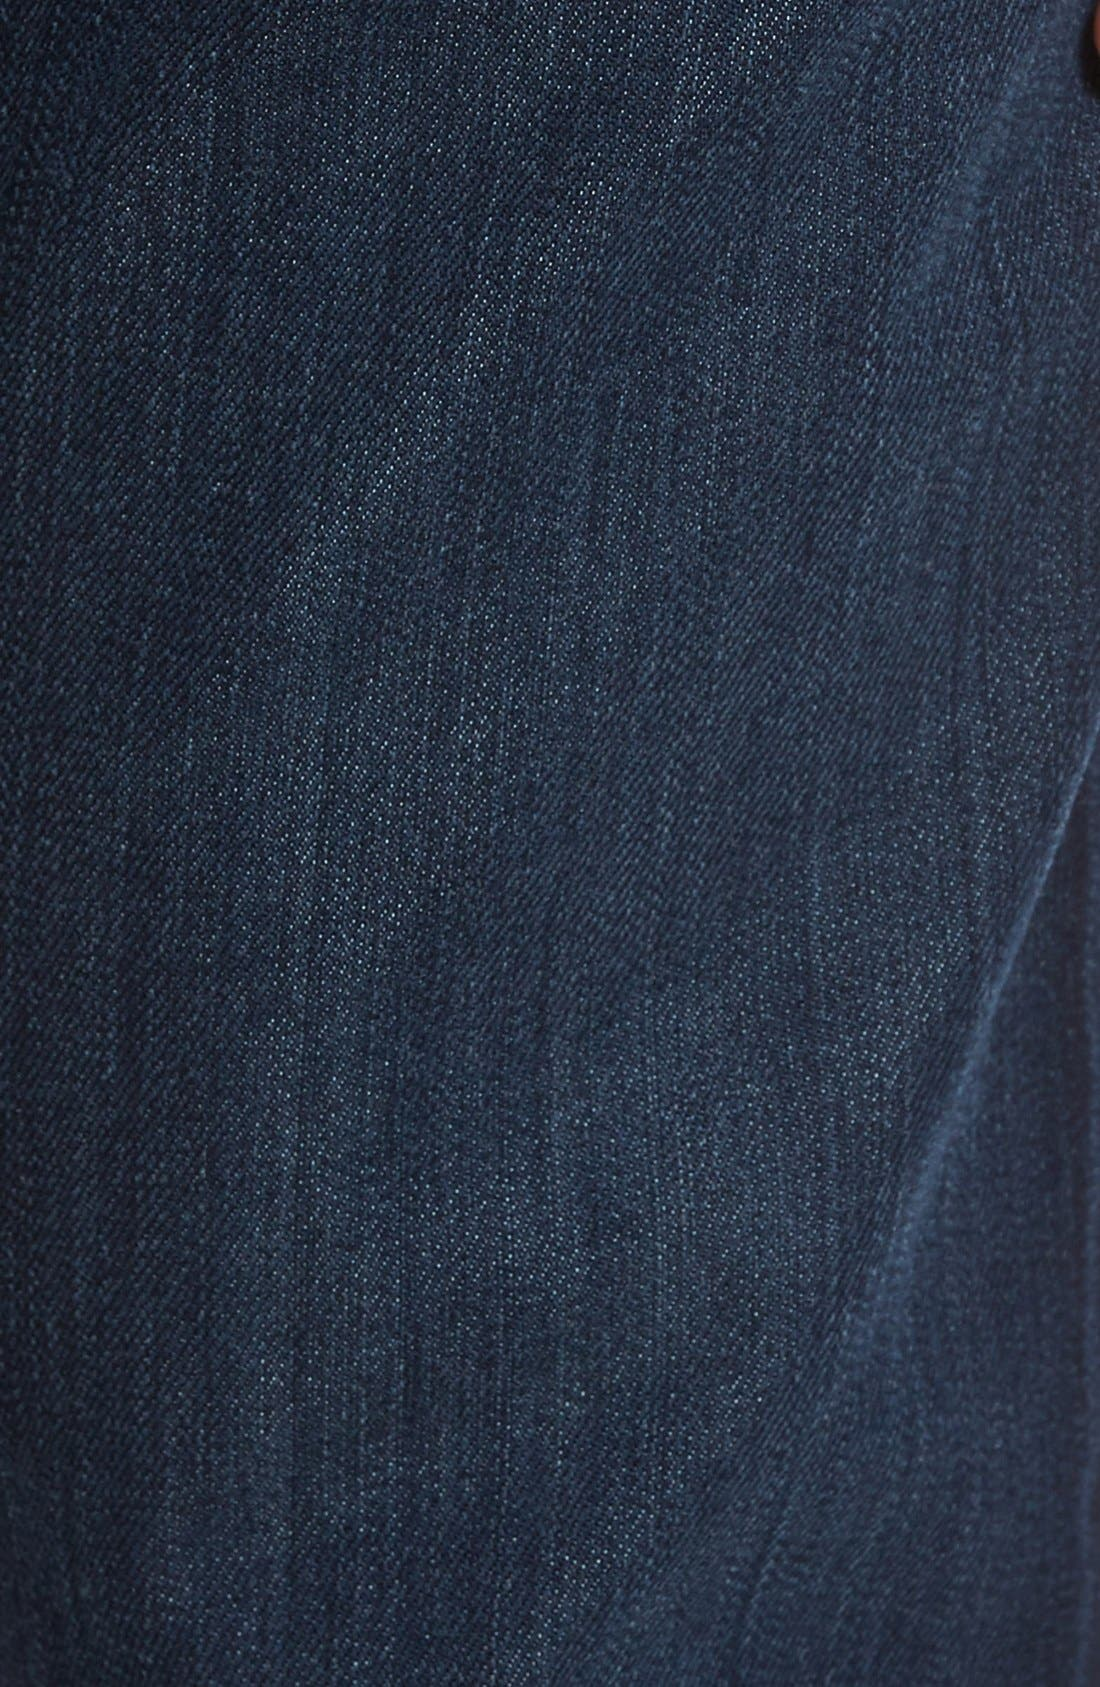 Impala Straight Leg Jeans,                             Alternate thumbnail 7, color,                             400